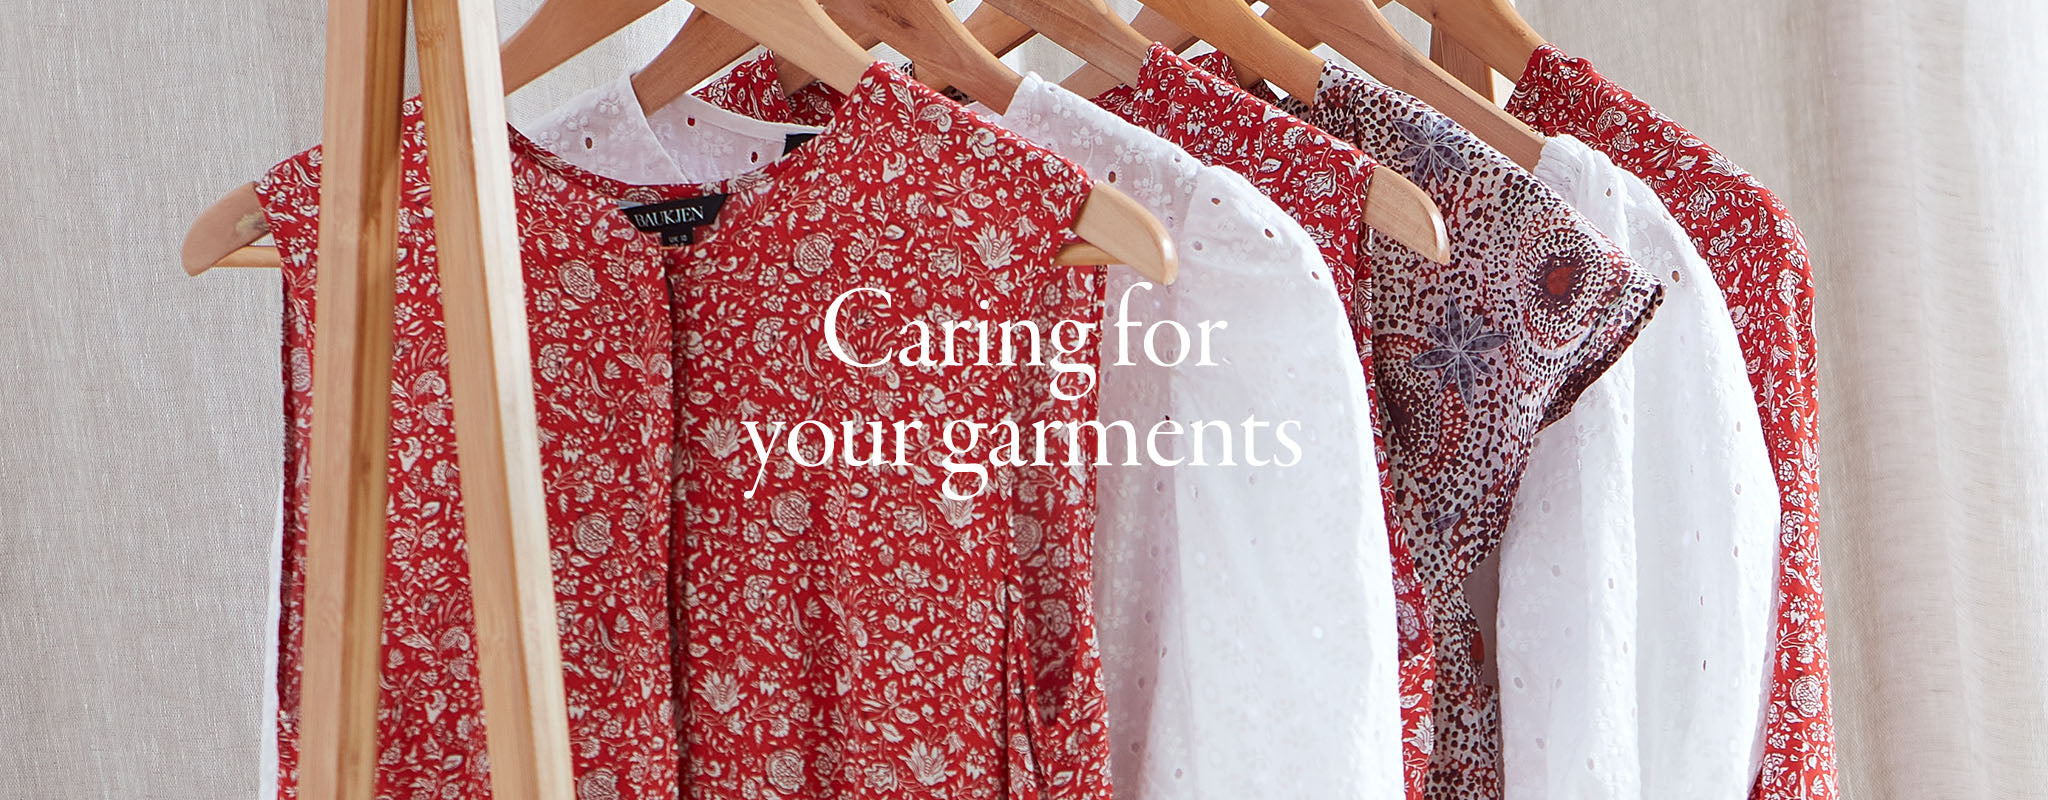 Caring for your garments